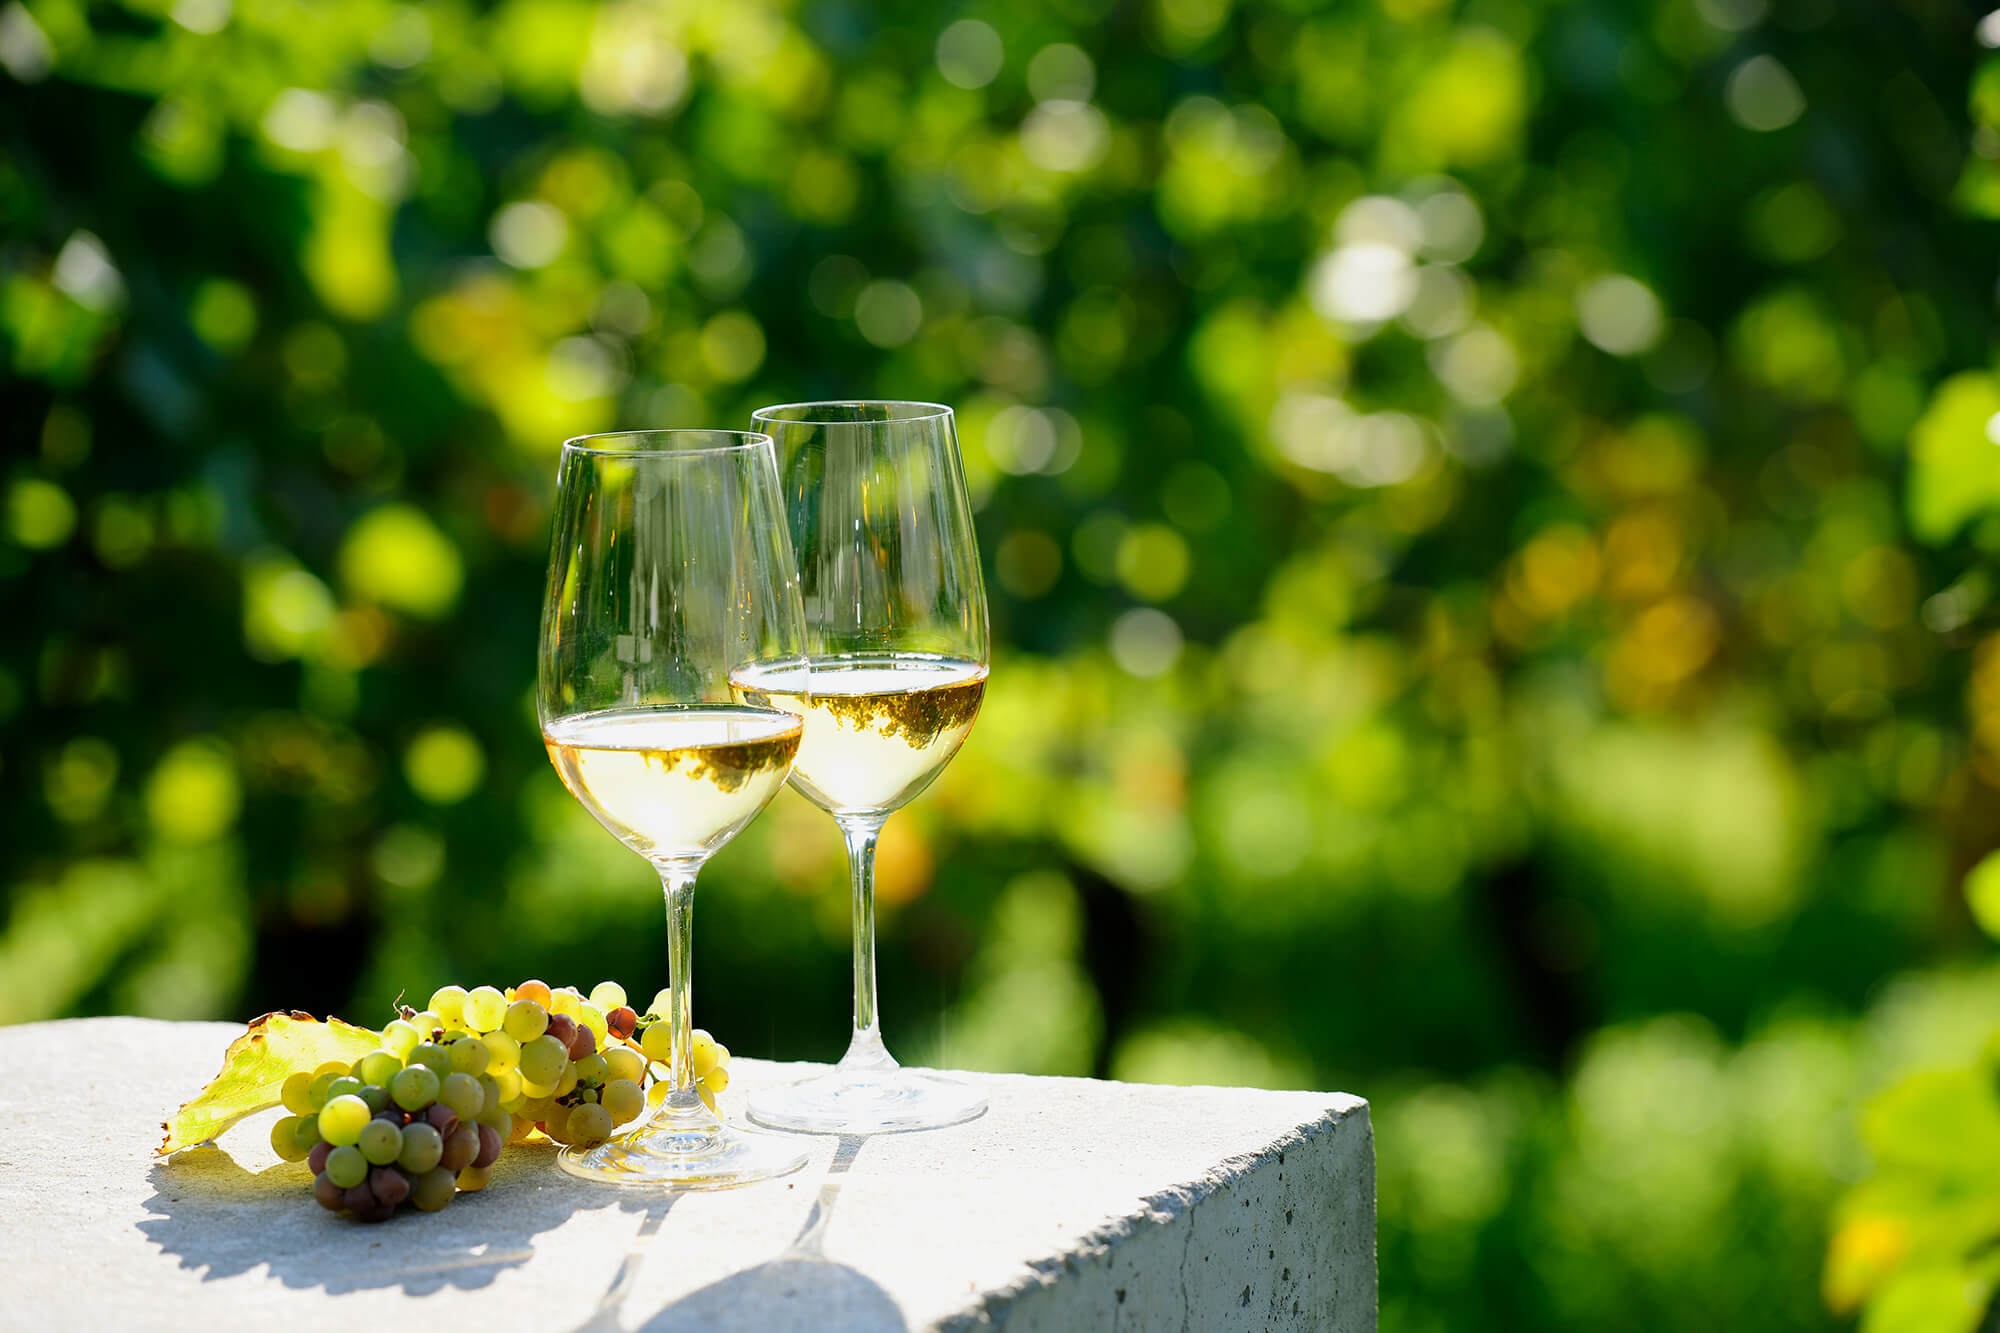 Two-glasses-of-white-wine-(Risling)-in-vineyard-157694086_6048x4032.jpg